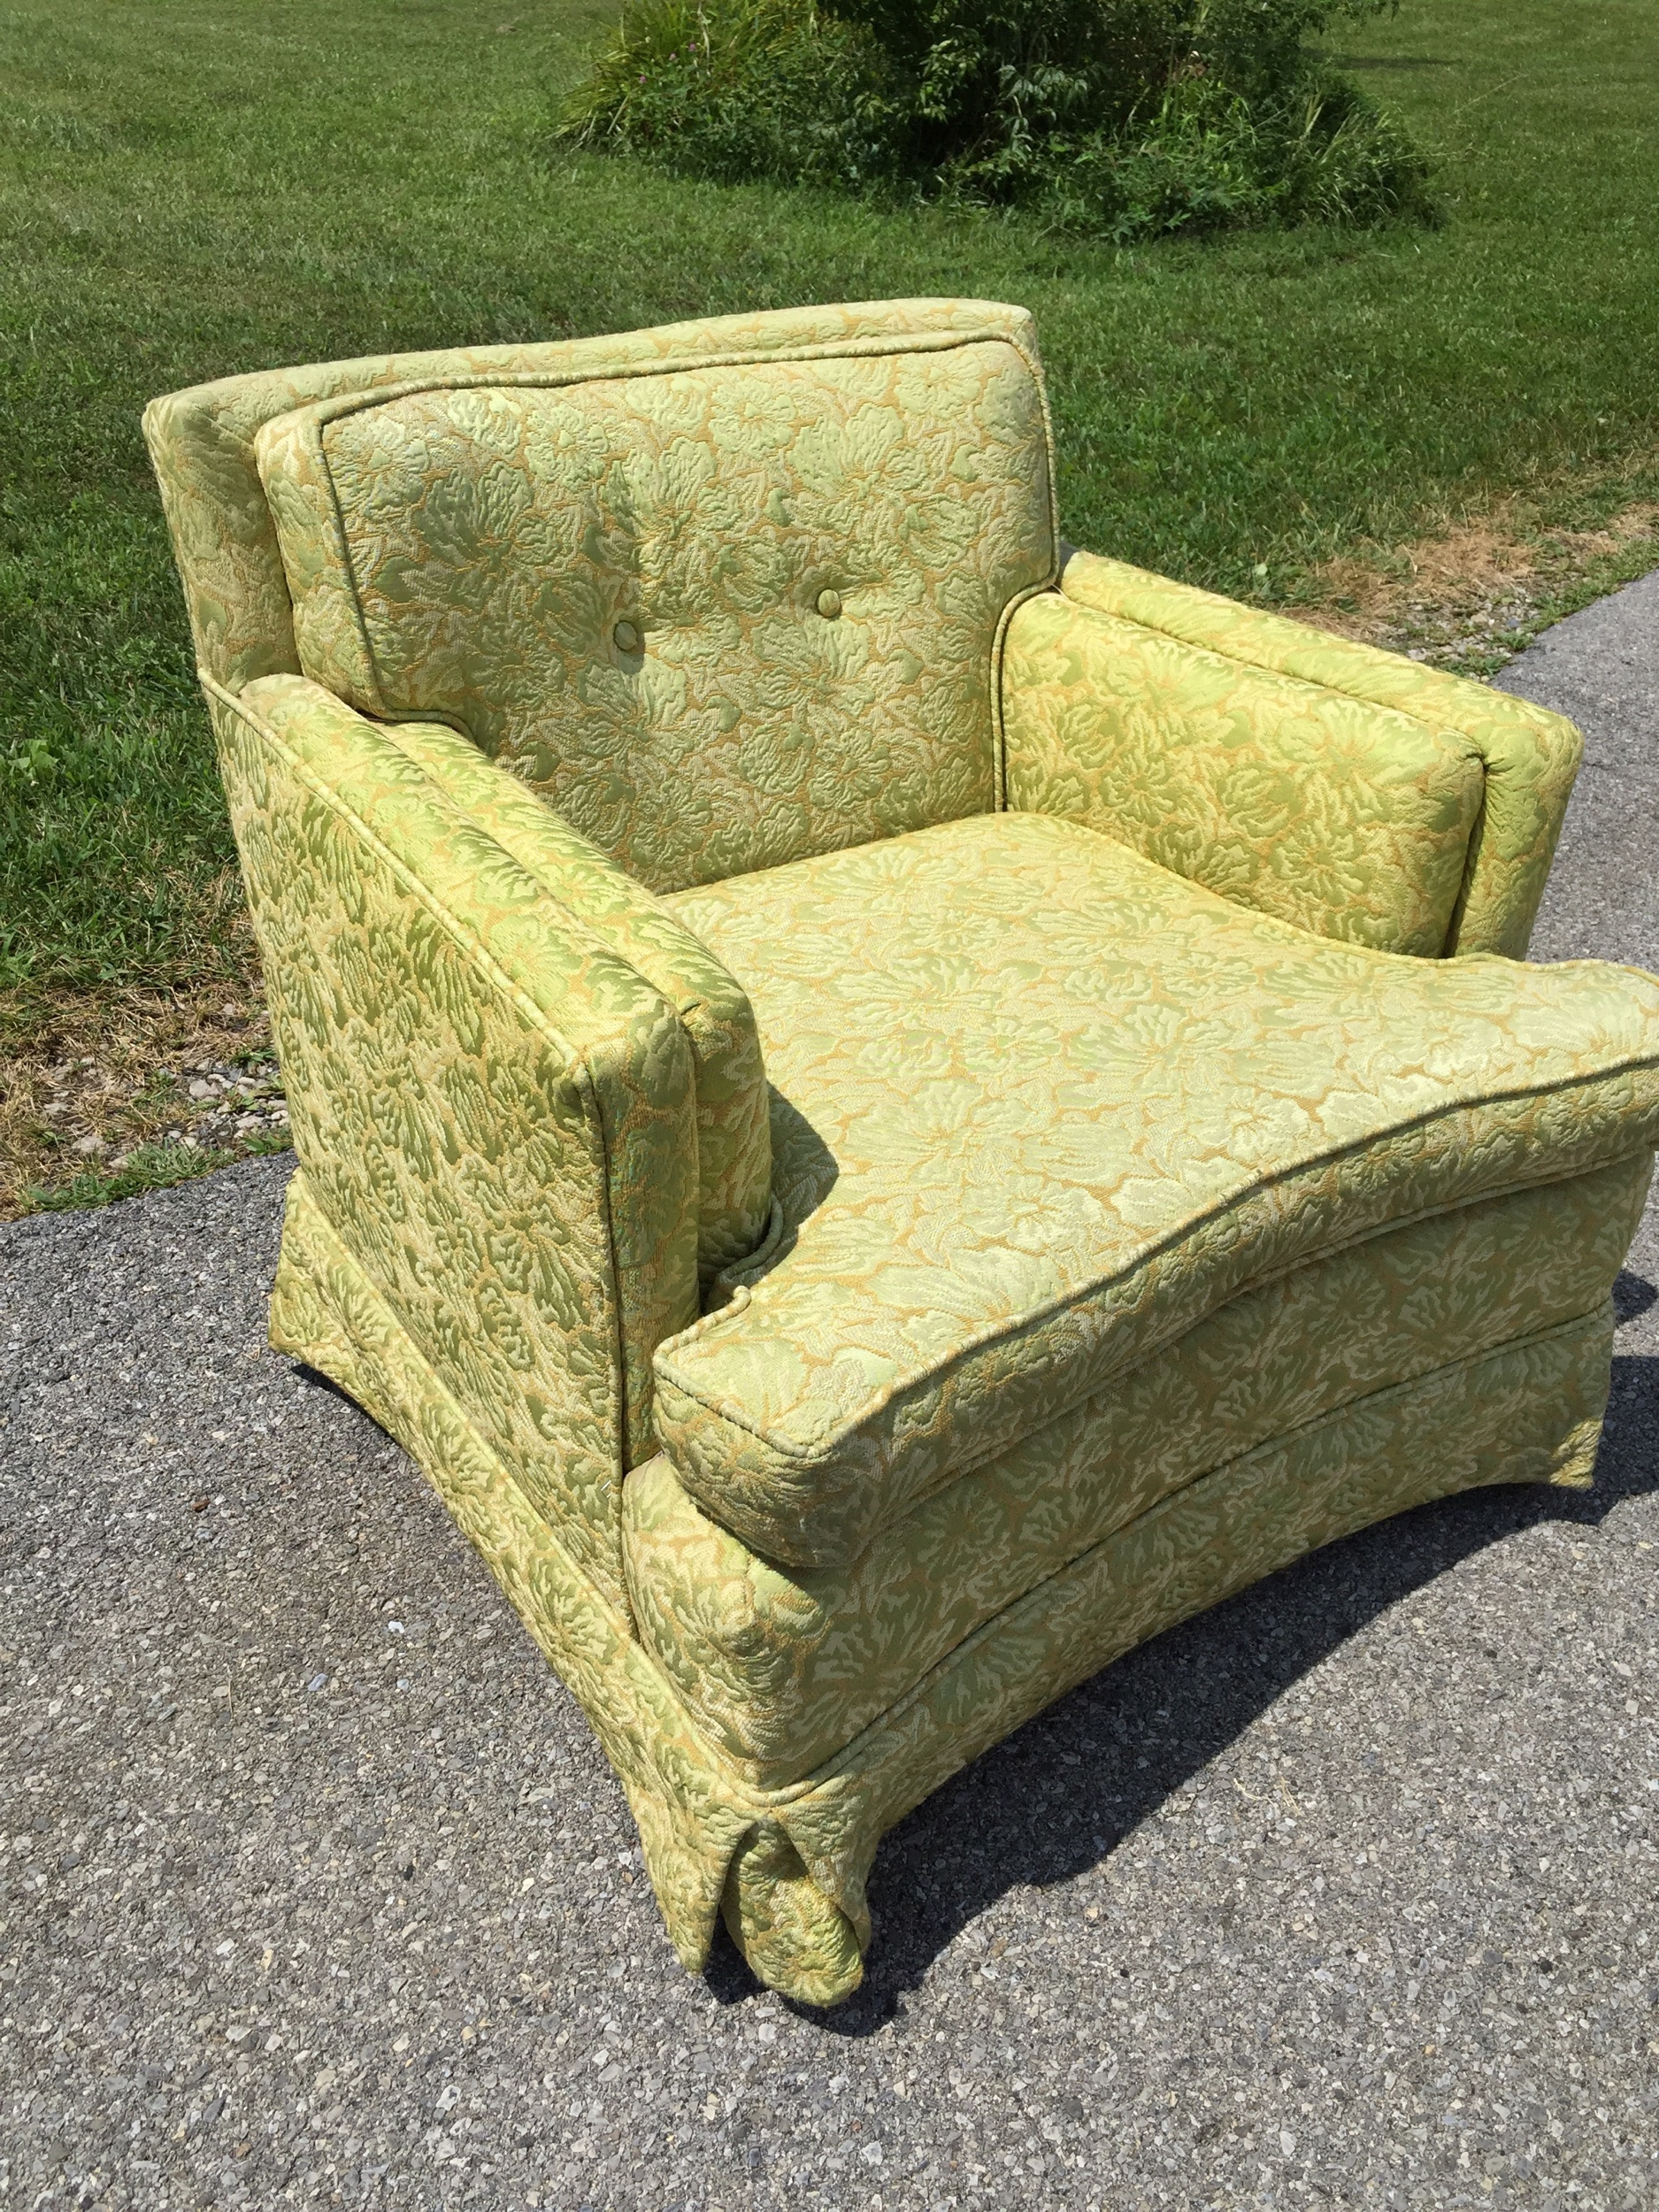 Super comfy damask club chair. Usable but there is some sun fade and minor wear to the upholstery. Buy as is or let me help you recreate this beauty to Your specifications. Did you know similar New chairs from crate And barrel sell for over $1000? We can do this one for less than that! I have a talented upholsterer who gives me great rates! I will help you sOurce fabric too.